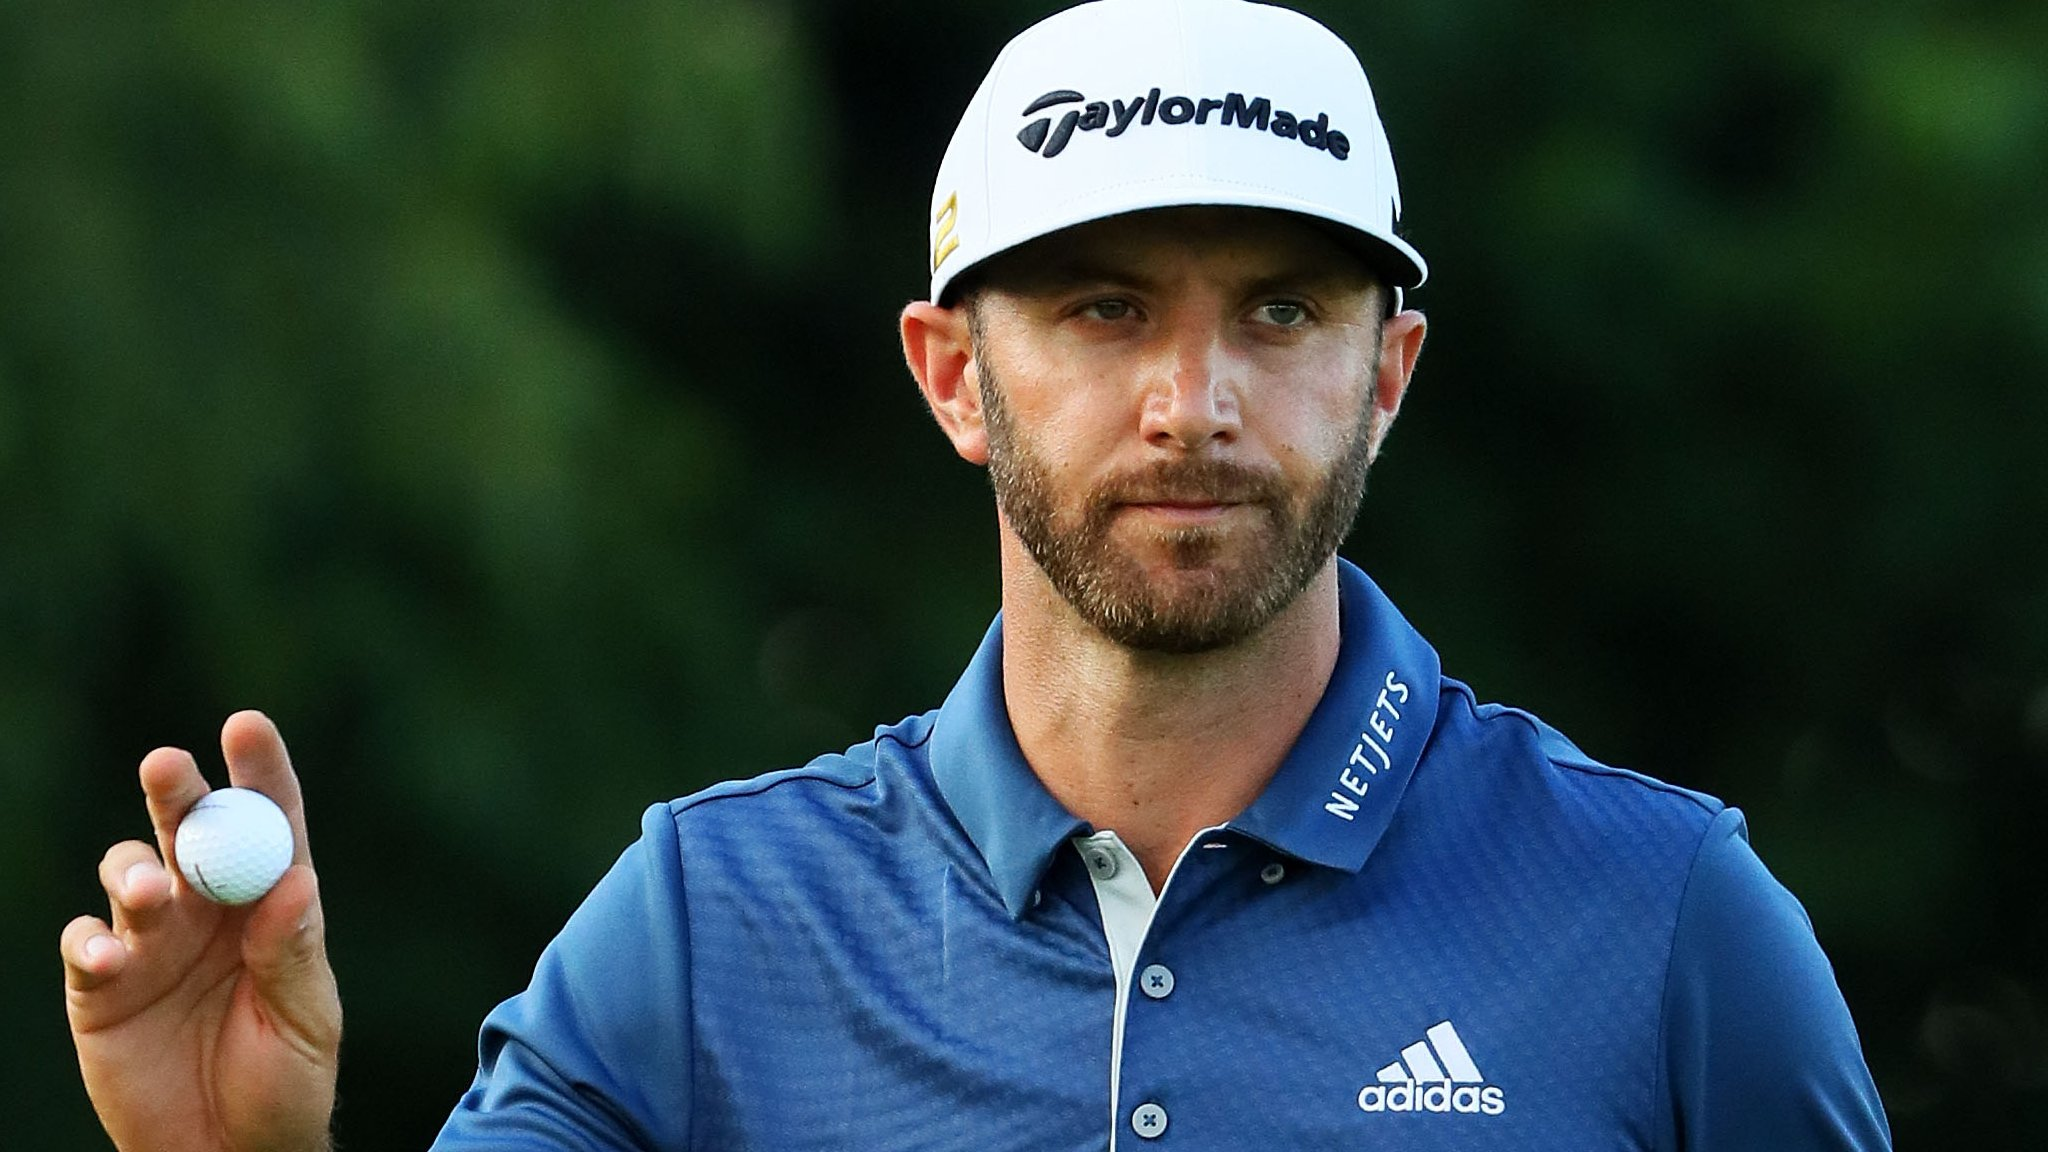 Dustin Johnson's US Open controversy leads to rule change